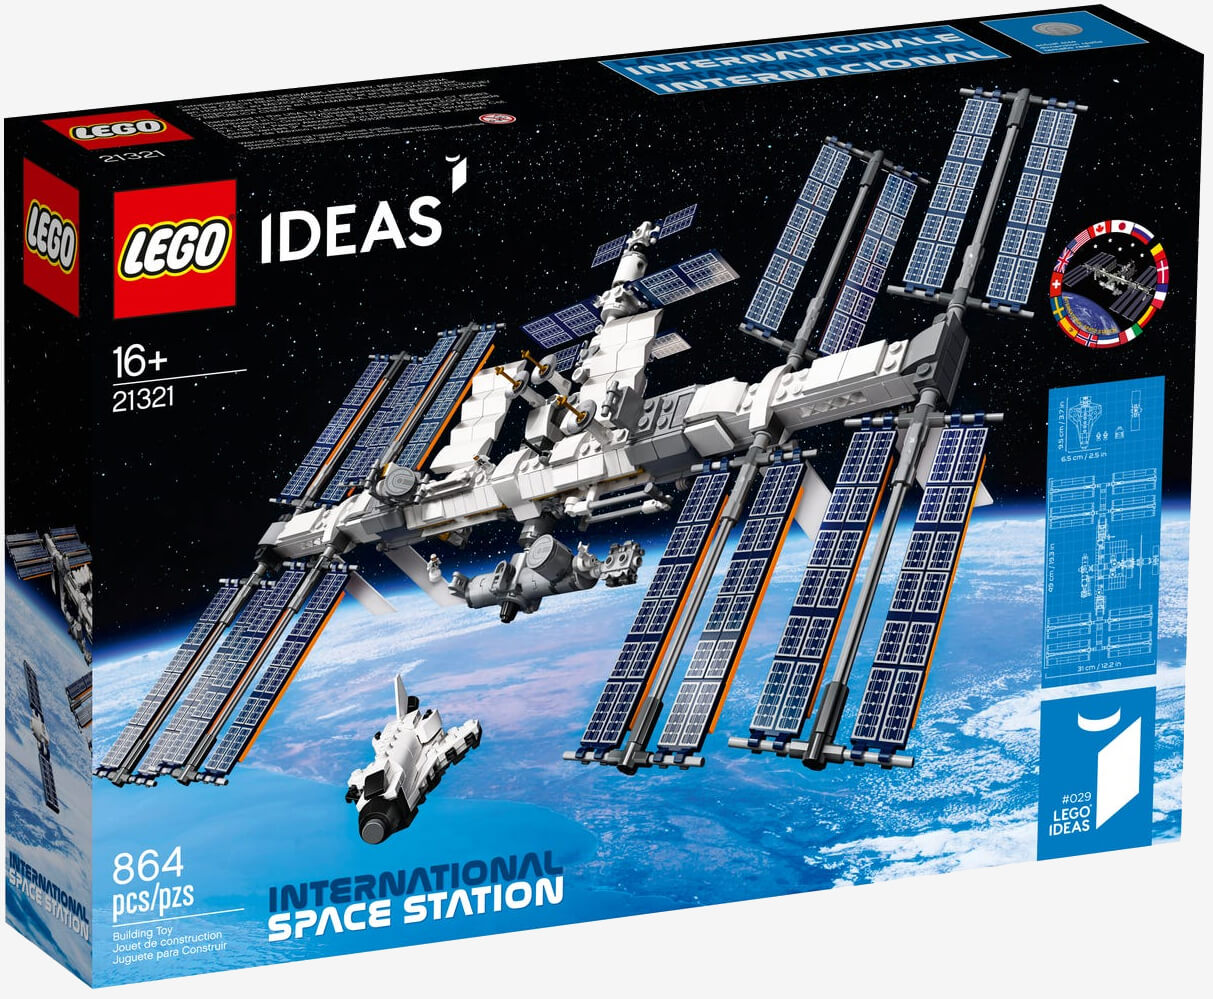 Lego's latest Idea creation is the International Space Station kit